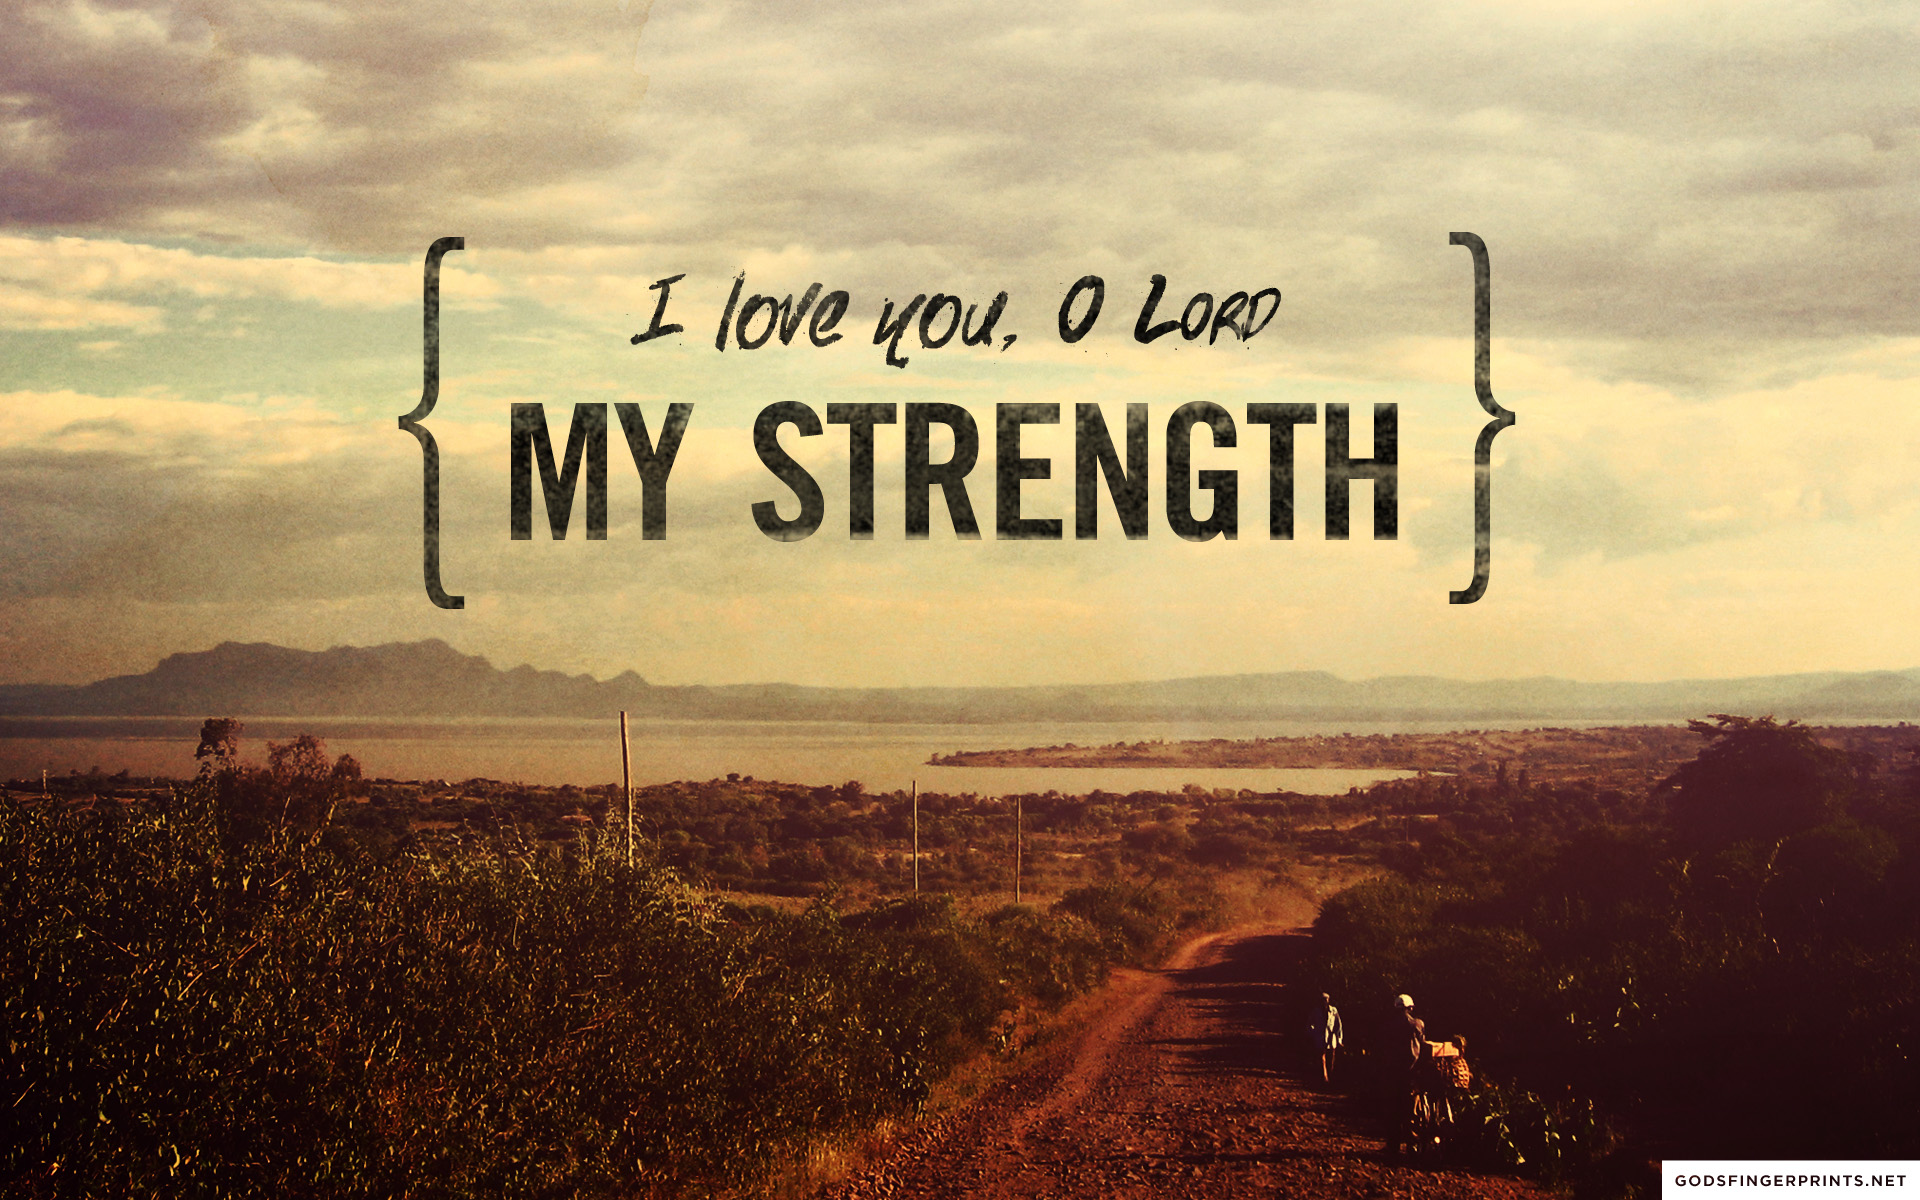 Best 55 The Lord Is My Strength Wallpaper on HipWallpaper 1920x1200